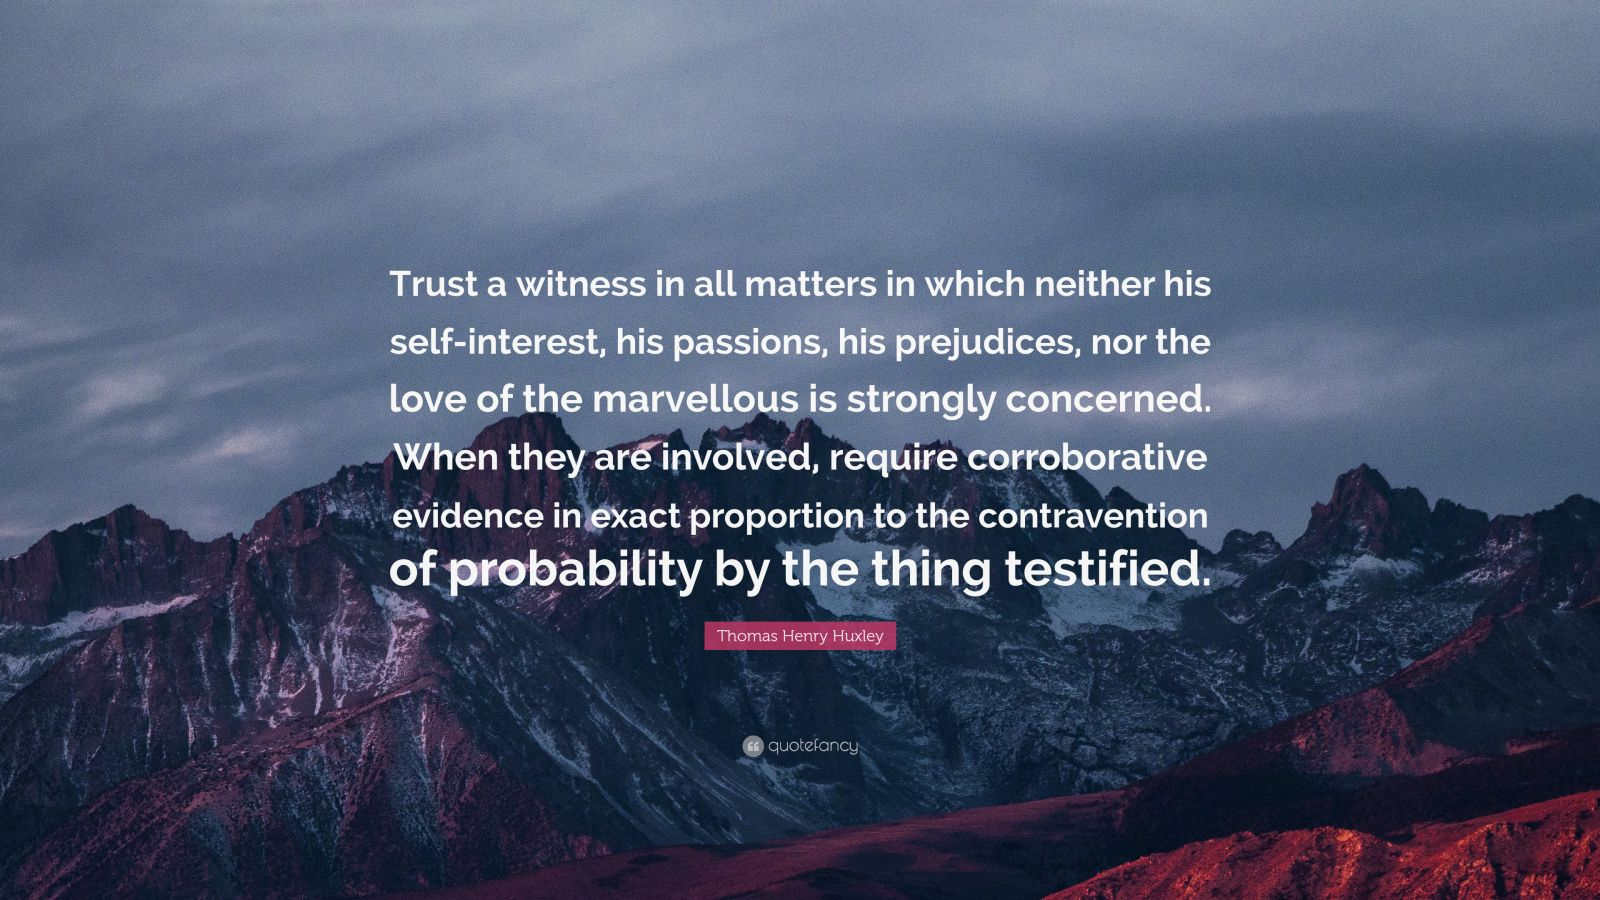 "Thomas Henry Huxley Quote: ""Trust a witness in all matters in which neither his self-interest, his passions, his prejudices, nor the love of the marvellous is strongly concerned. When they are involved, require corroborative evidence in exact proportion to the contravention of probability by the thing testified."""